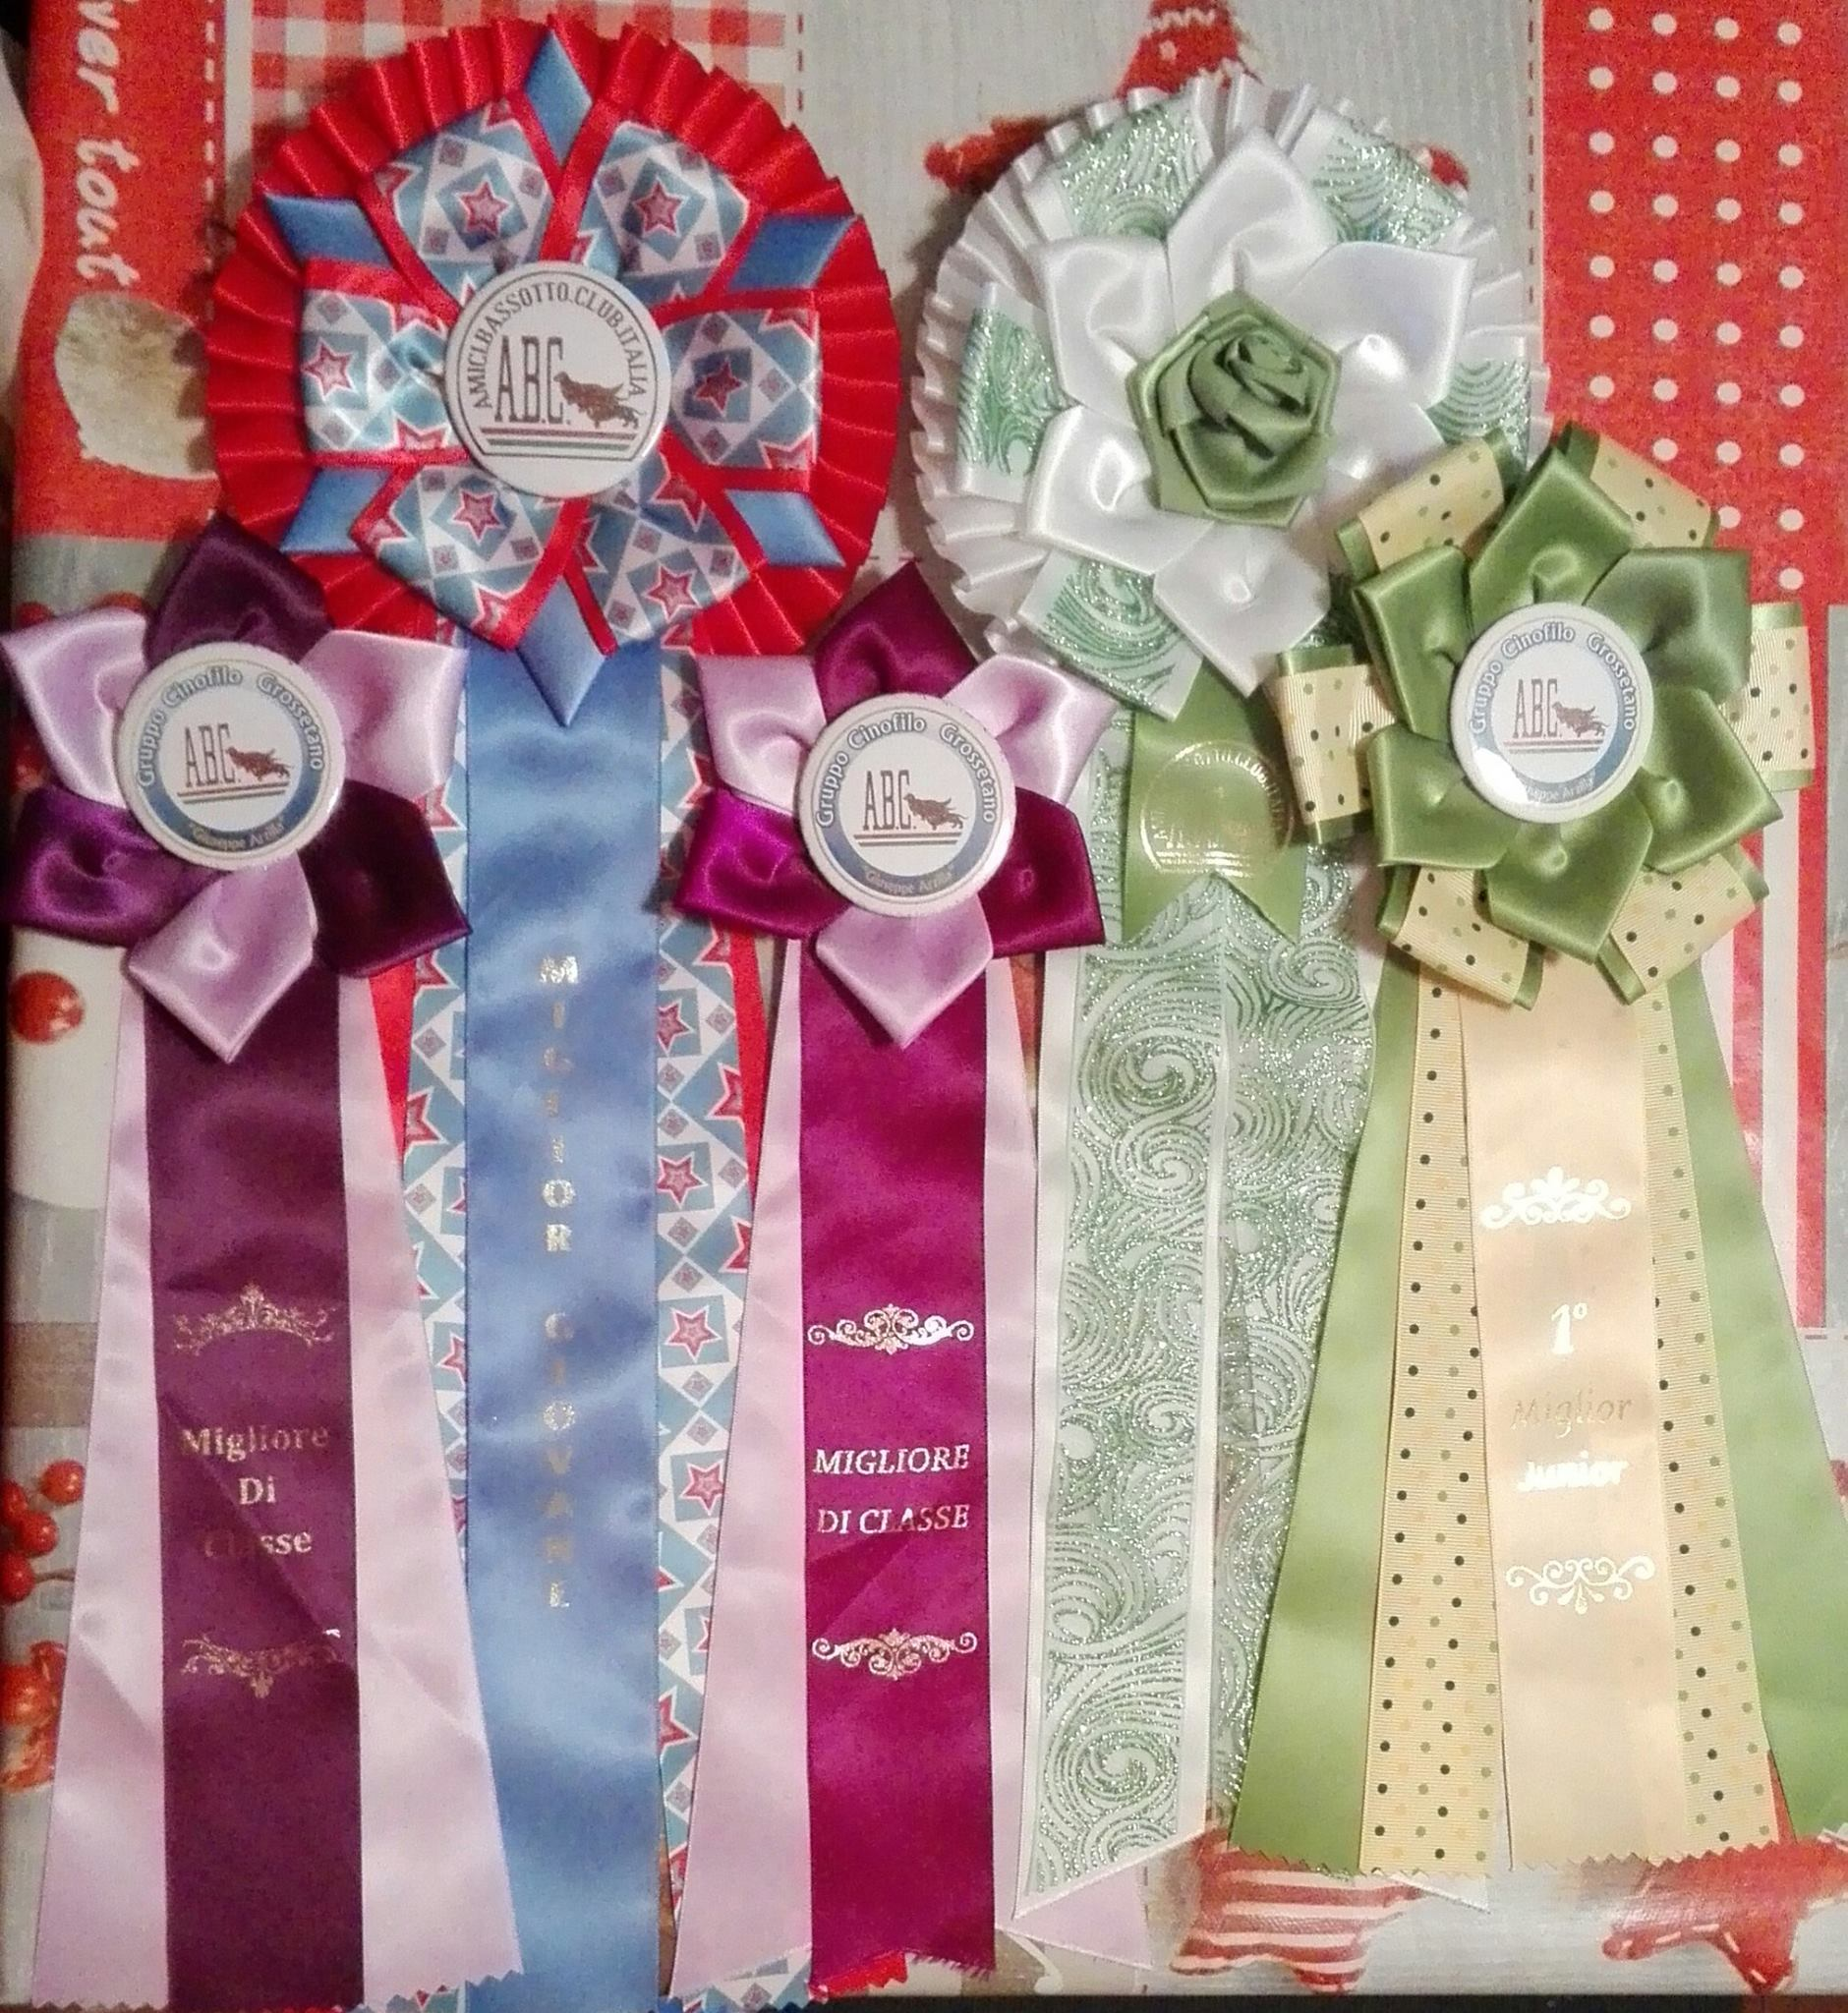 Rosette win at Speciality dachshund club ABC